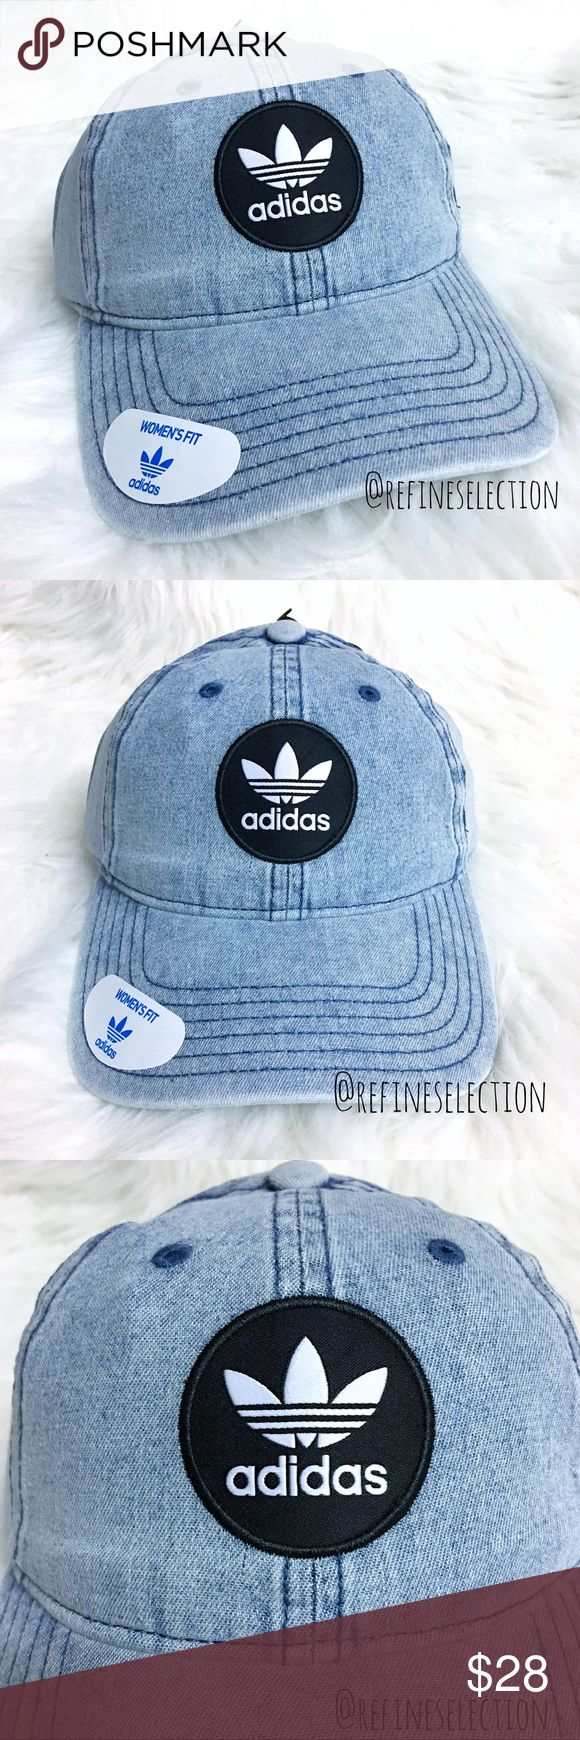 adidas Originals Washed Denim Patch Strapback Cap Brand new. This adidas Originals Washed Denim Patch Strapback Cap Hat is so classic and on trend right now! Love the vintage inspired chambray washed denim with the adidas trefoil patch in black and white on the front. Has the adidas trefoil logo embroidered in black on the back. Adjustable strapback for the perfect fit. This cap is specifically designed for a Women's fit! adidas Accessories Hats